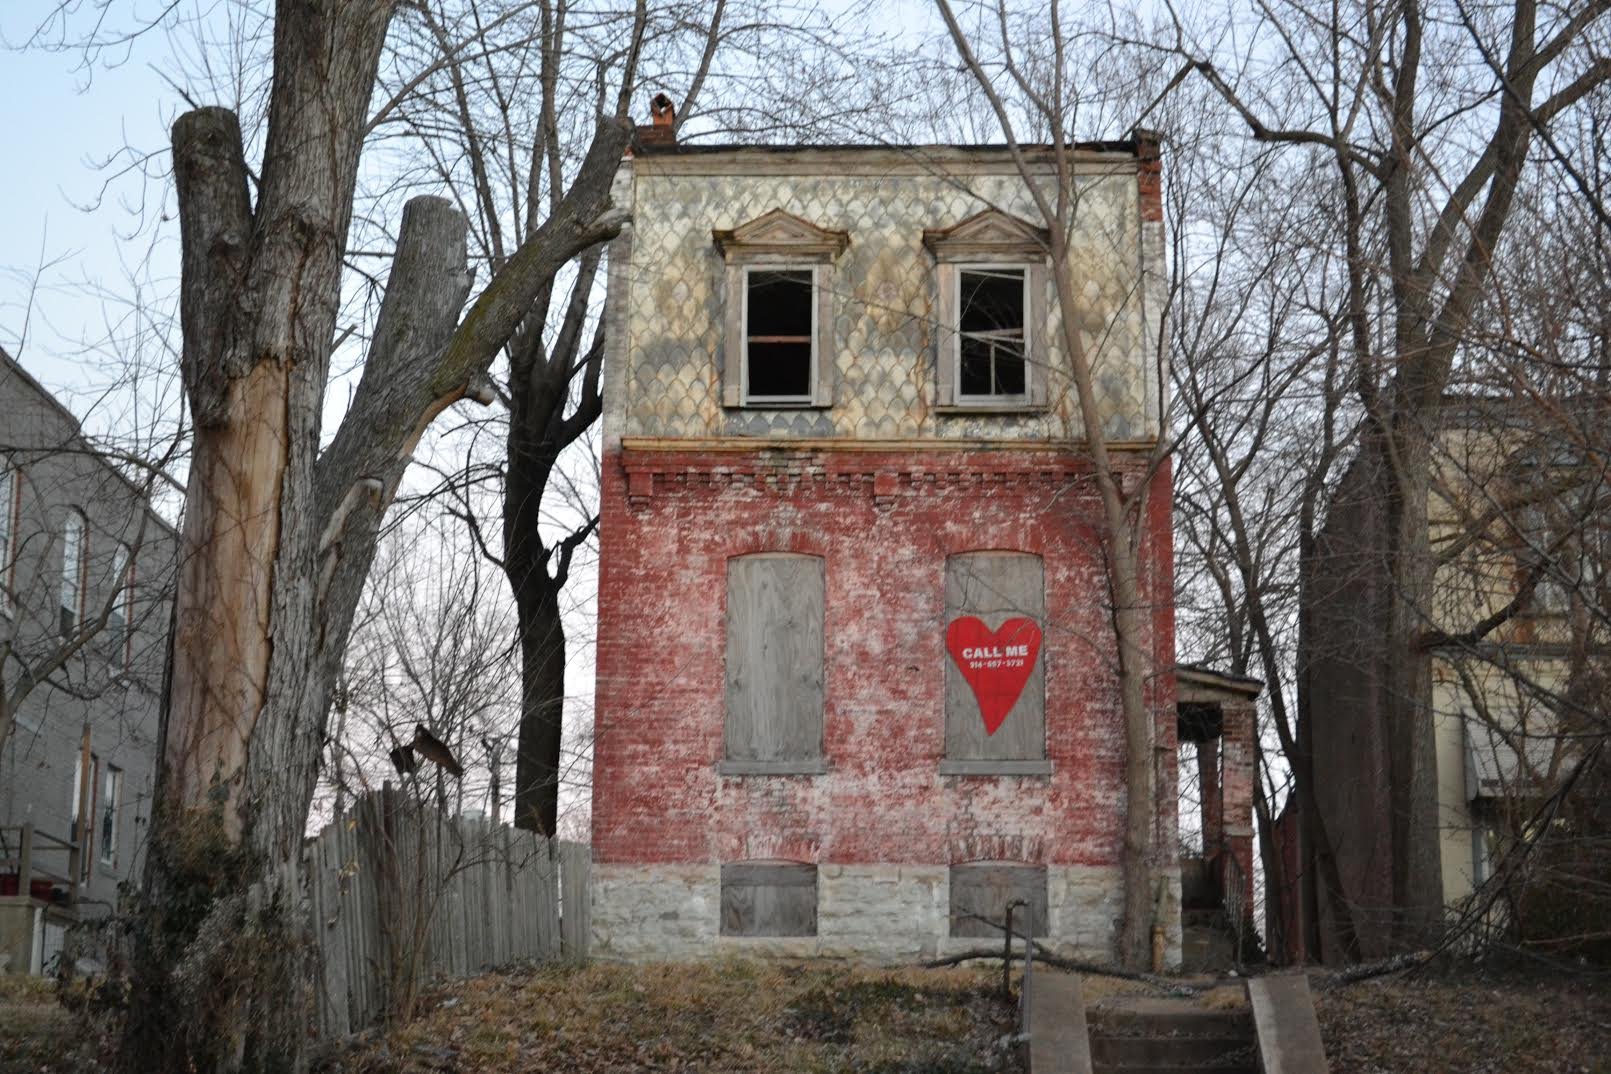 Valentines for vacant buildings - St. Louis, MO 2015